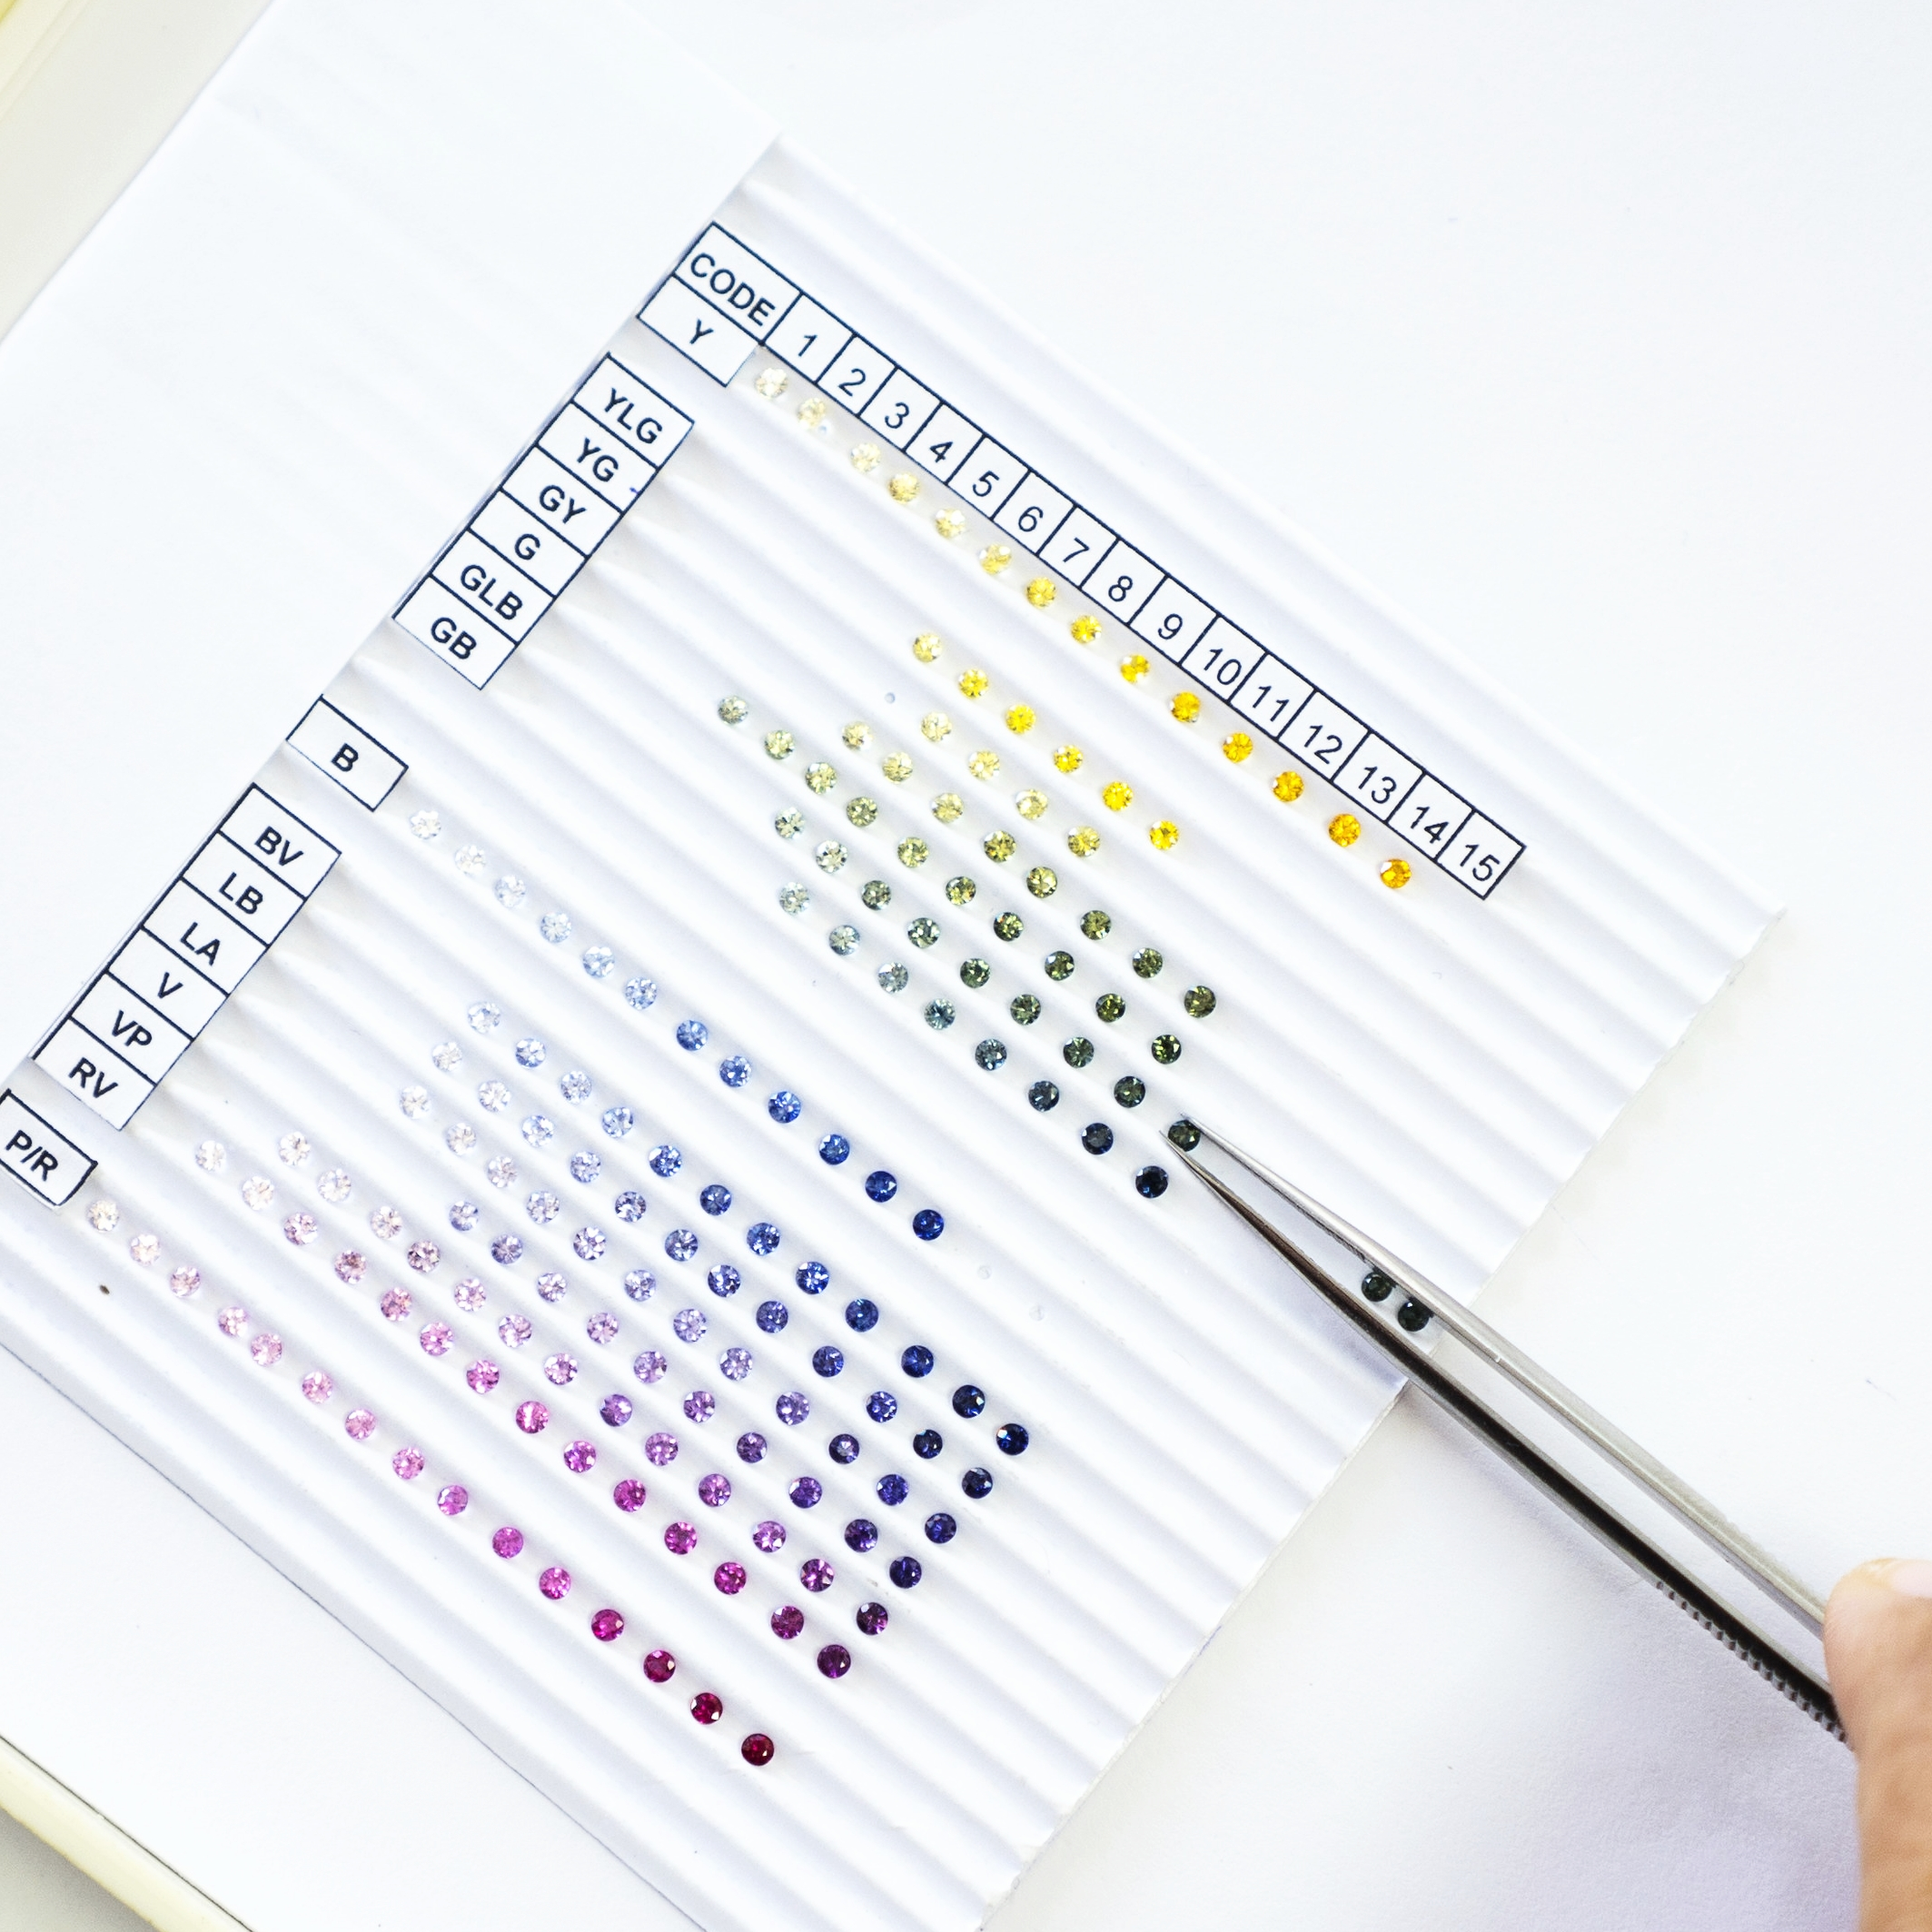 CONSULTATION - We create a system that matches with the customer's need, which gives an advantage to jewelry designers and stone setters to perform an easier task. We call it the Color Chart.